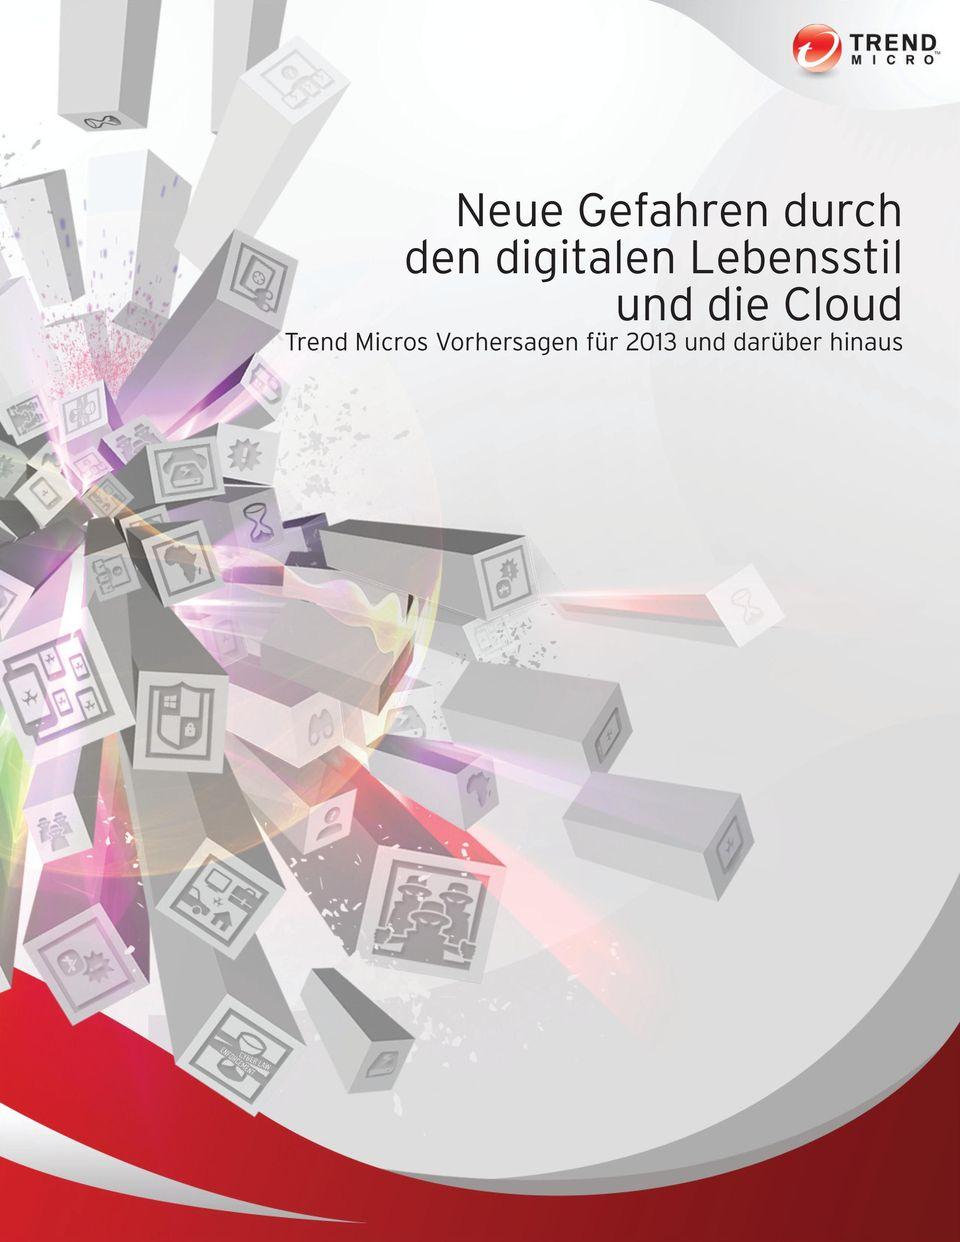 die Cloud Trend Micros